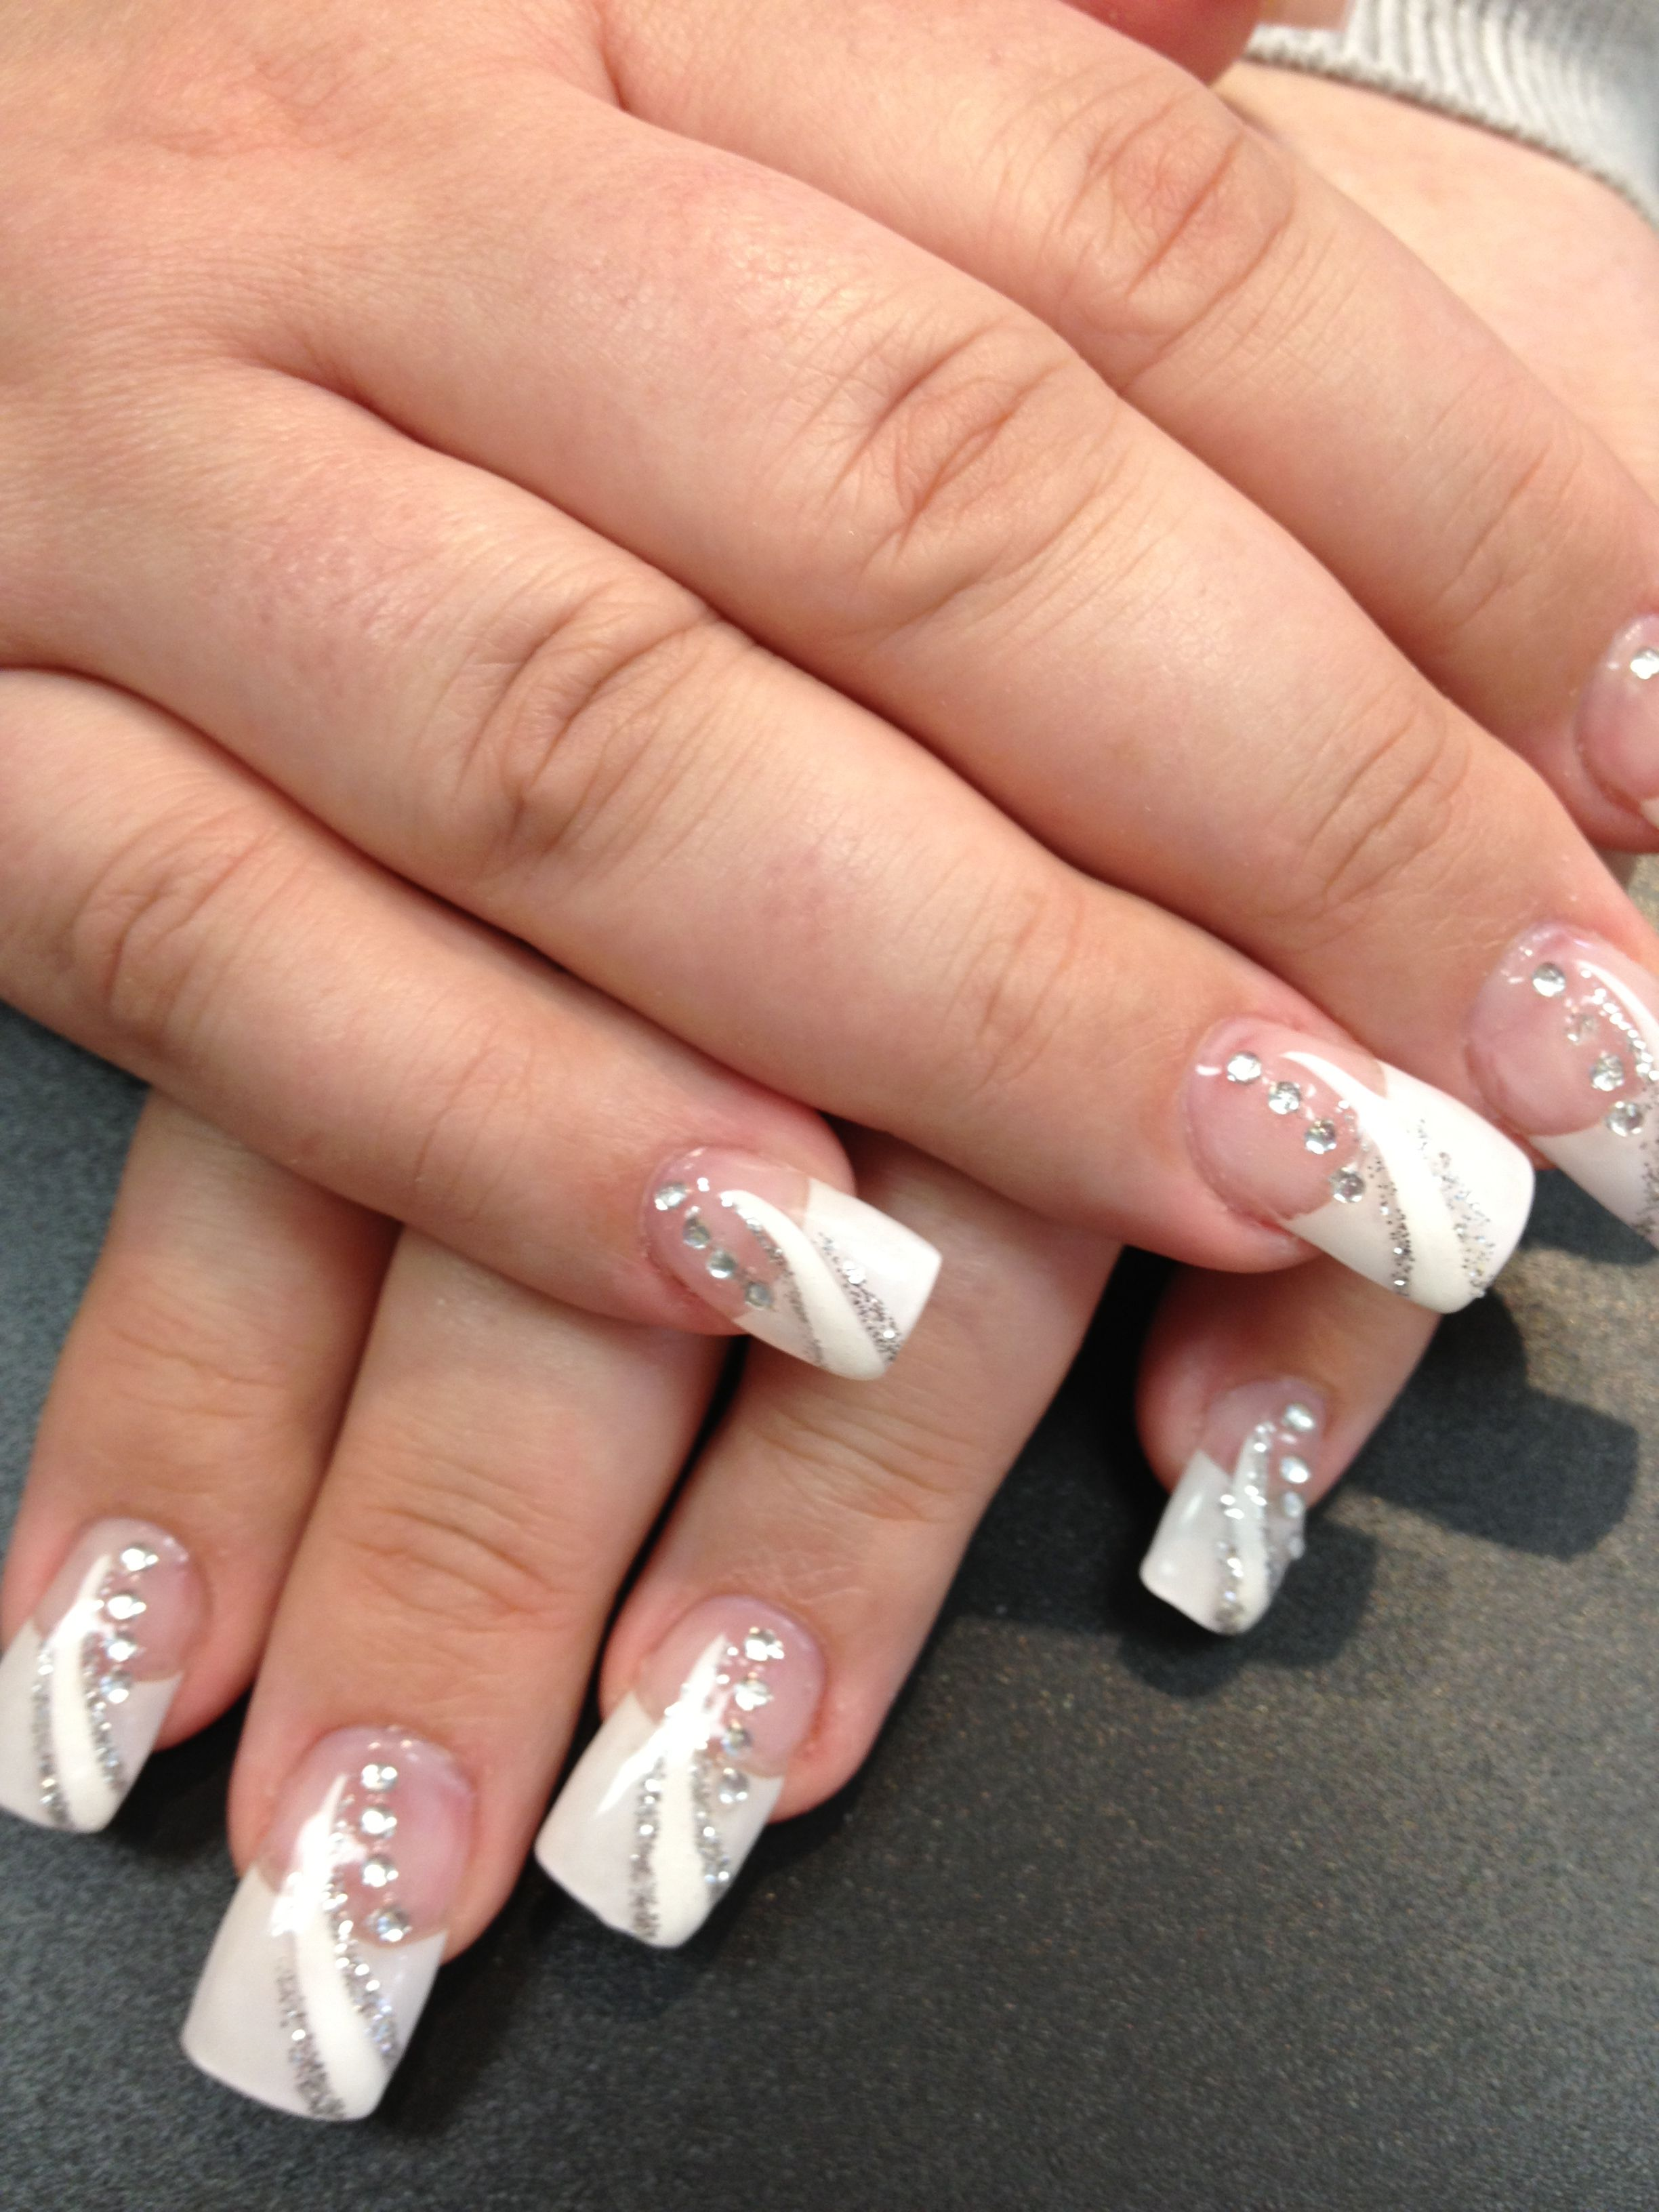 Solar nails french tips with white and silver design nails solar nails french tips with white and silver design prinsesfo Gallery